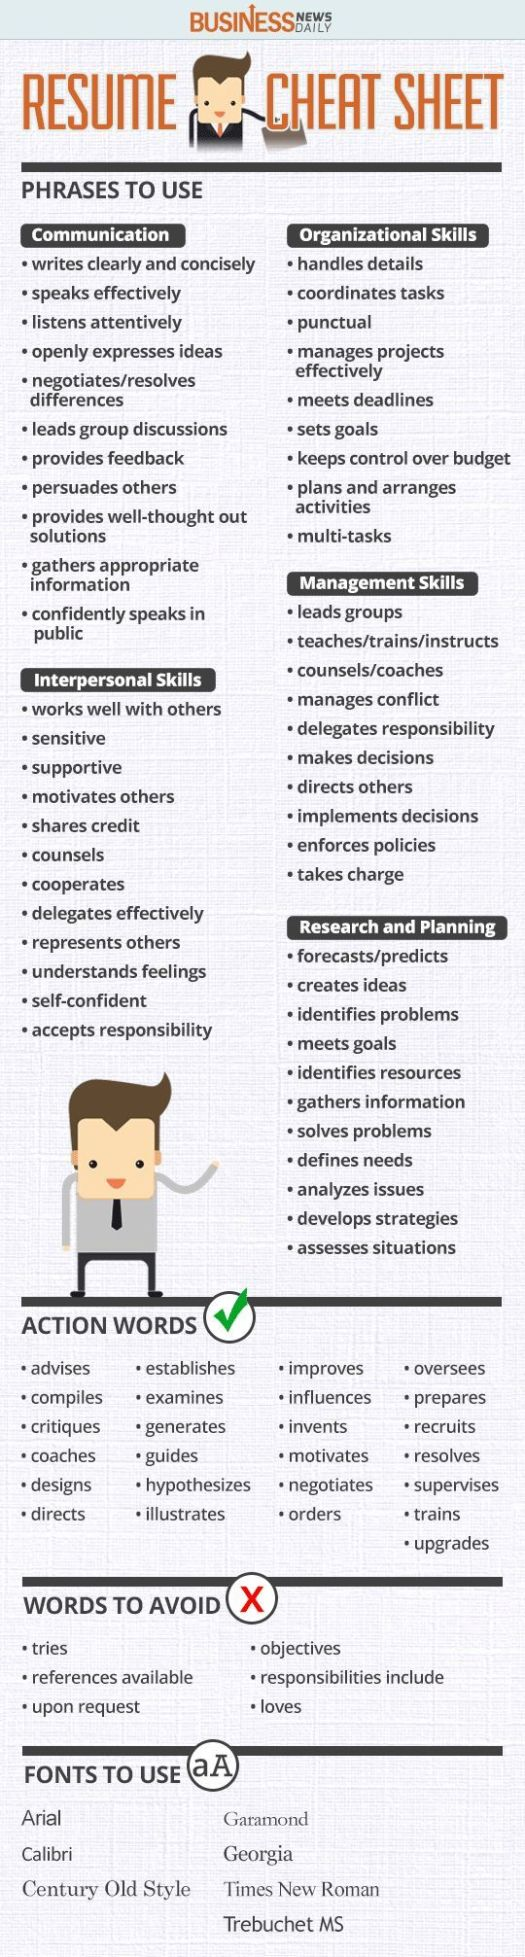 Infographic Resume Cheat Sheet